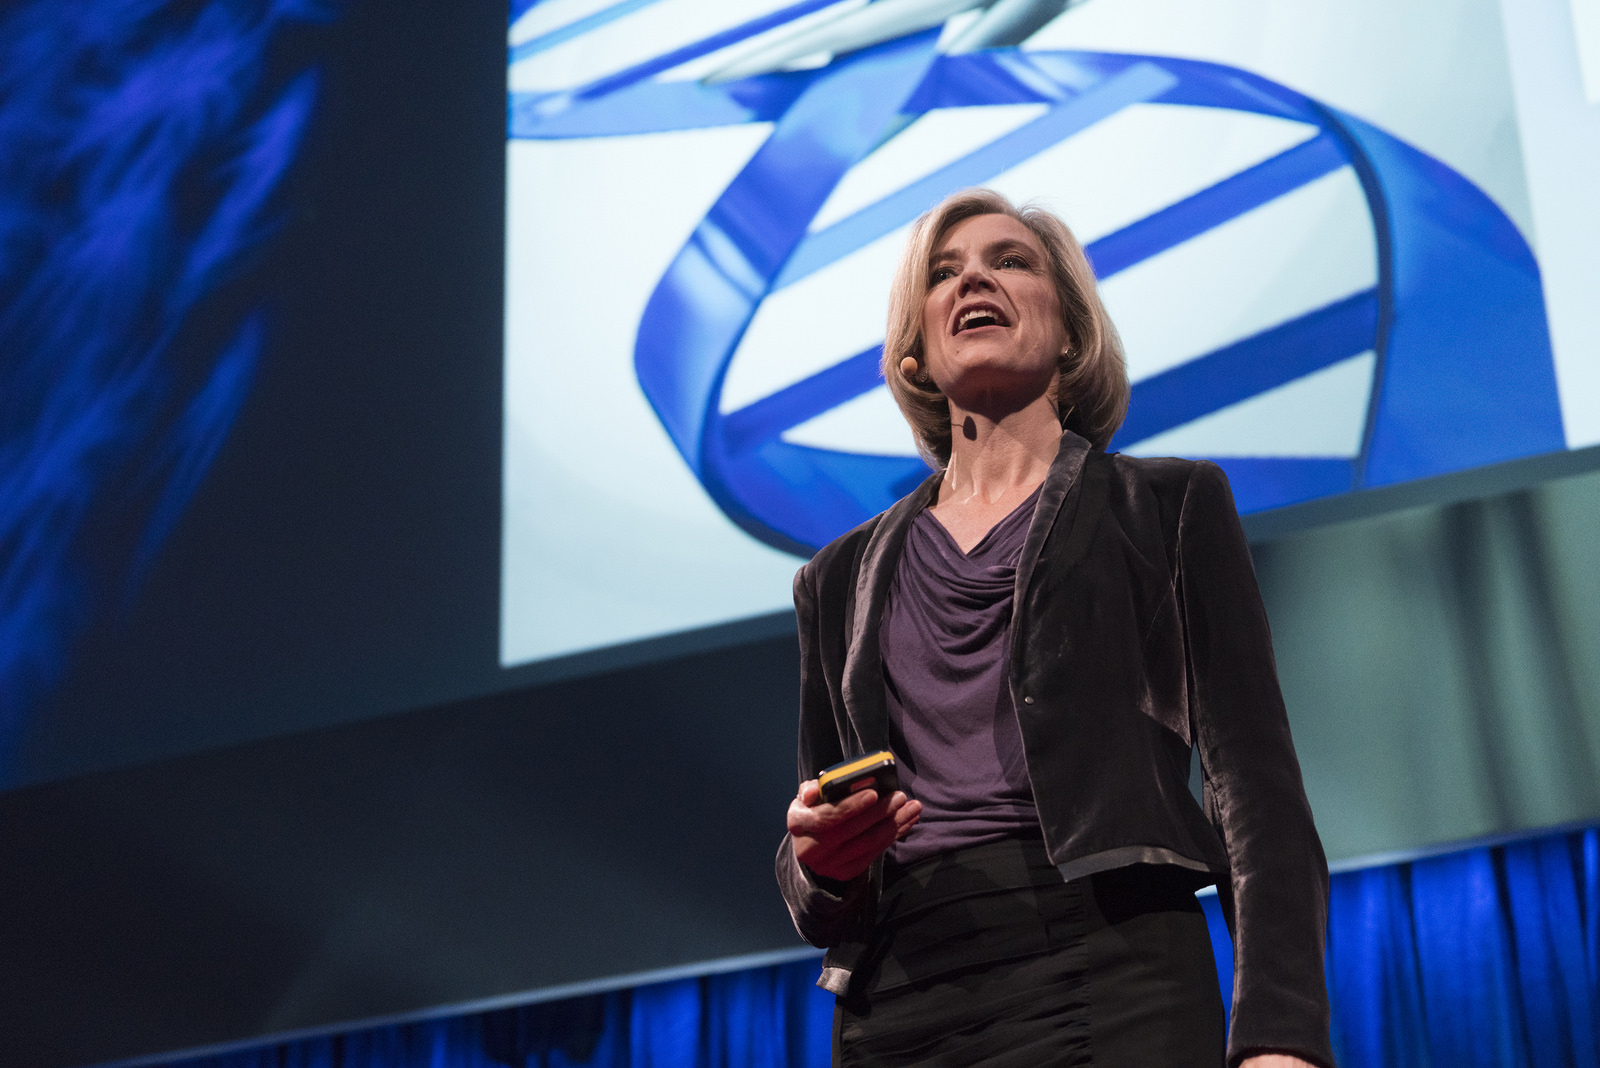 Biochemist Jennifer Doudna describes CRISPR Cas9 at TEDGlobal London, 2015.